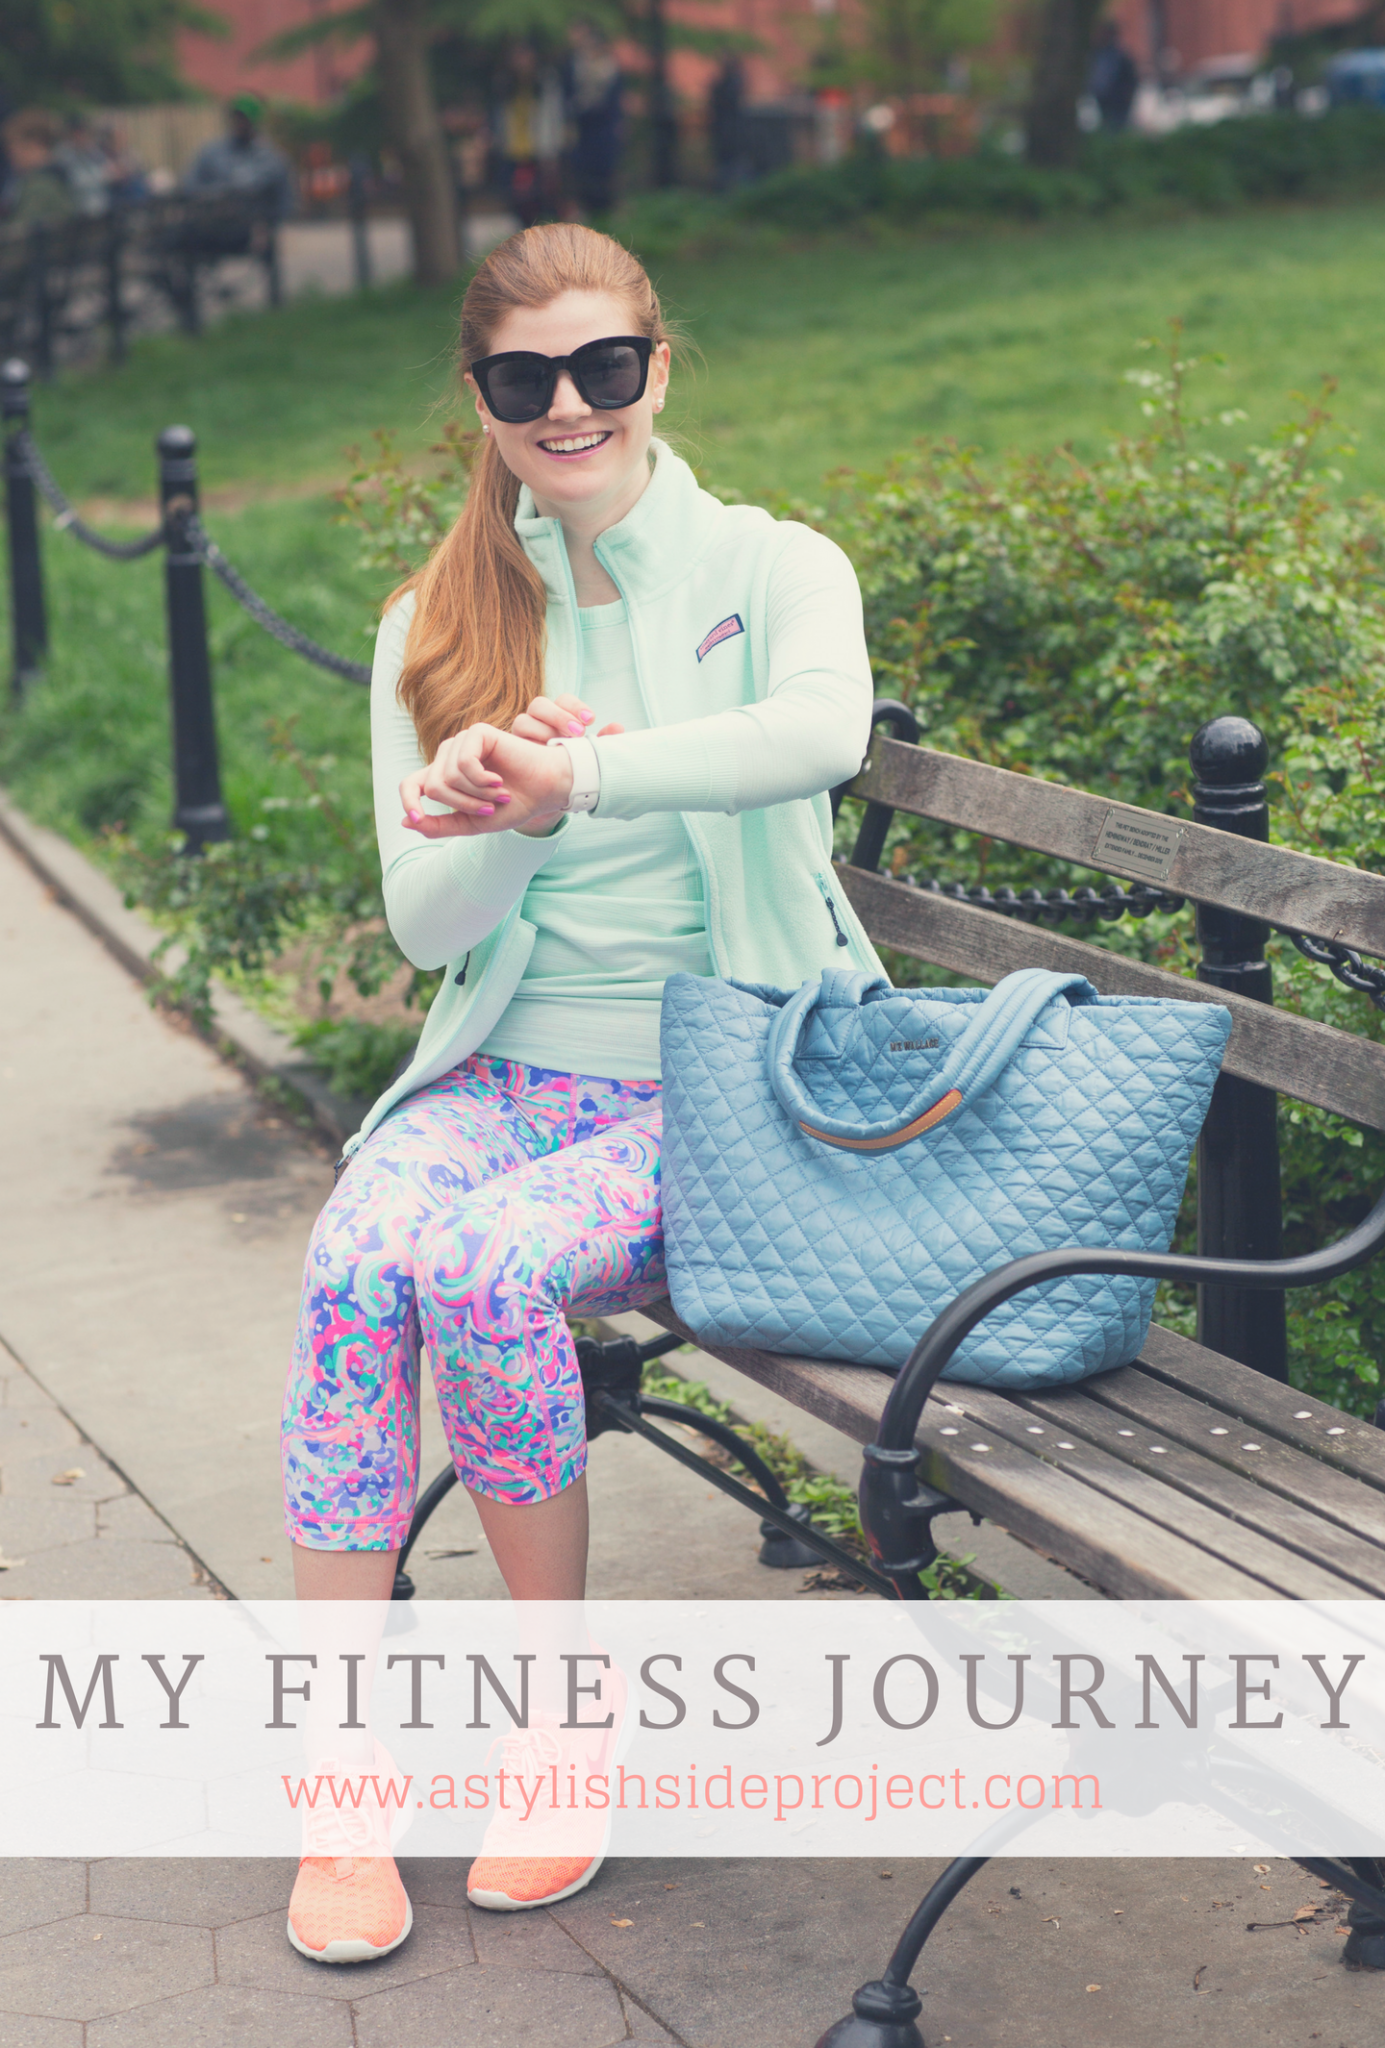 Lifestyle blogger Mollie Sheperdson shares her fitness journey and where she's at now